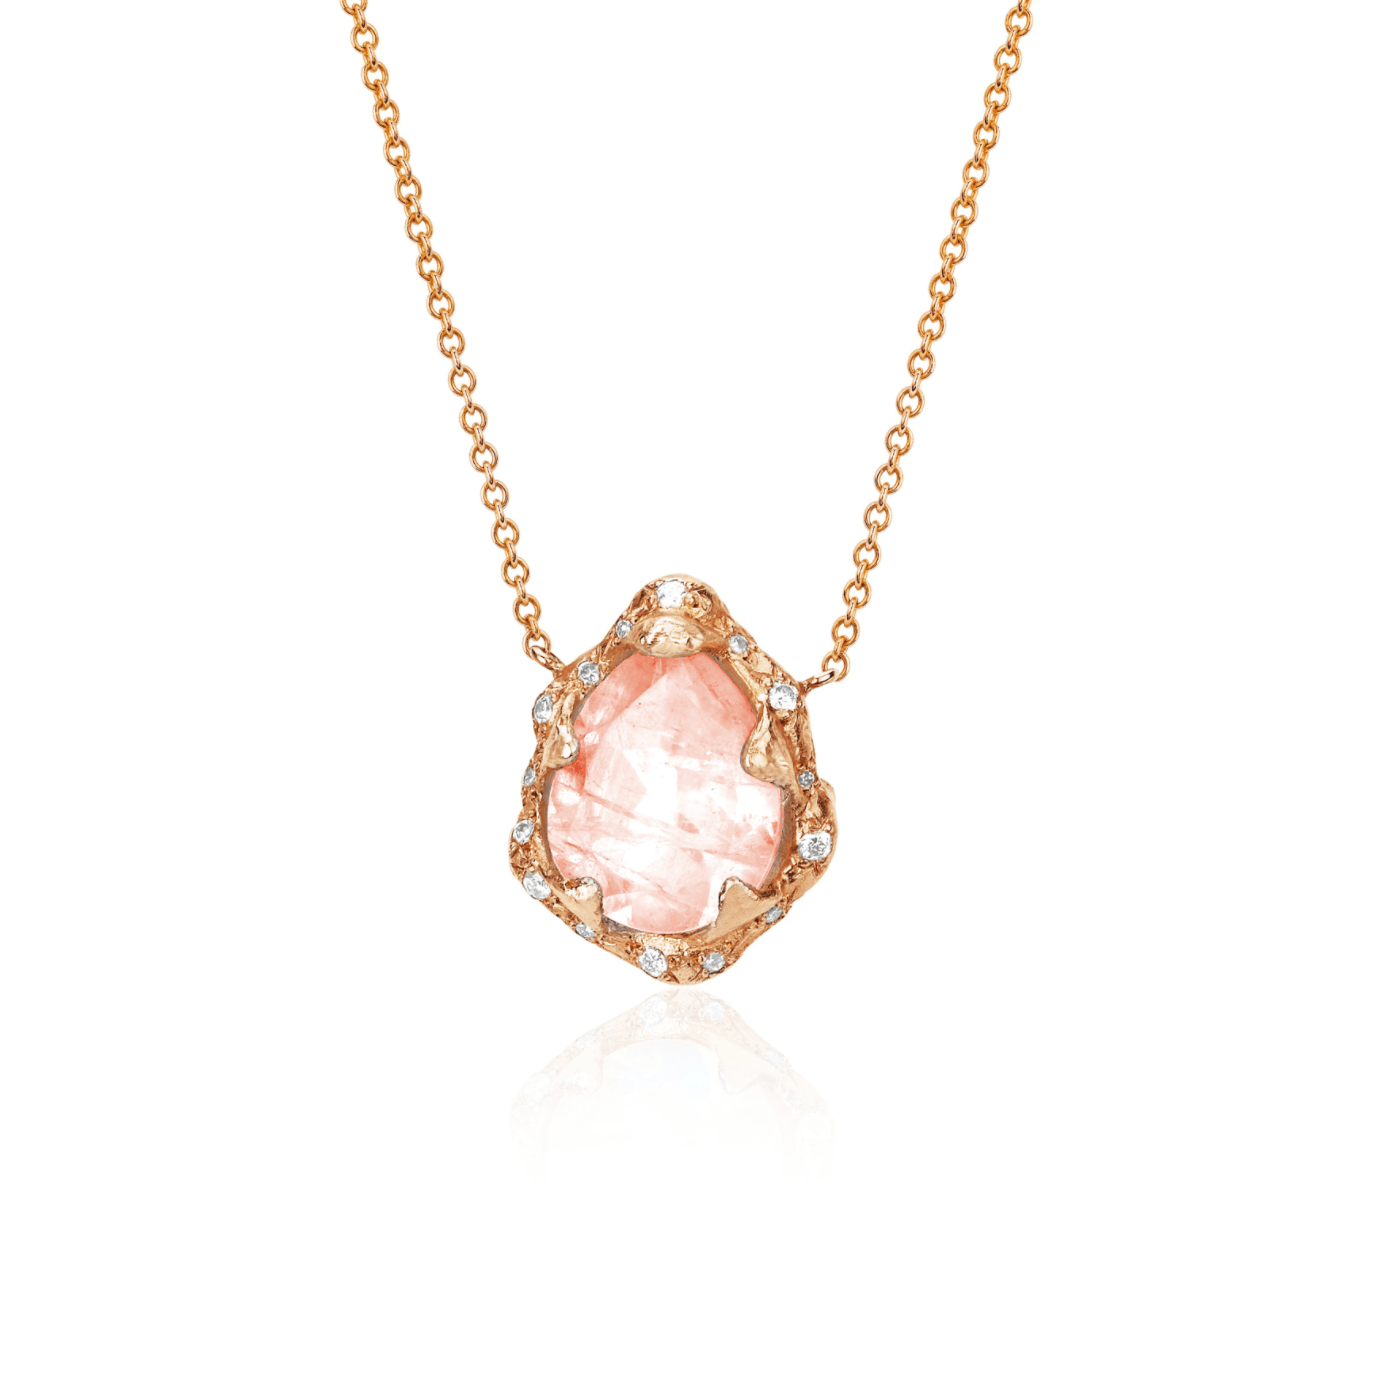 NEW! Baby Queen Water Drop Morganite Necklace with Sprinkled Diamonds